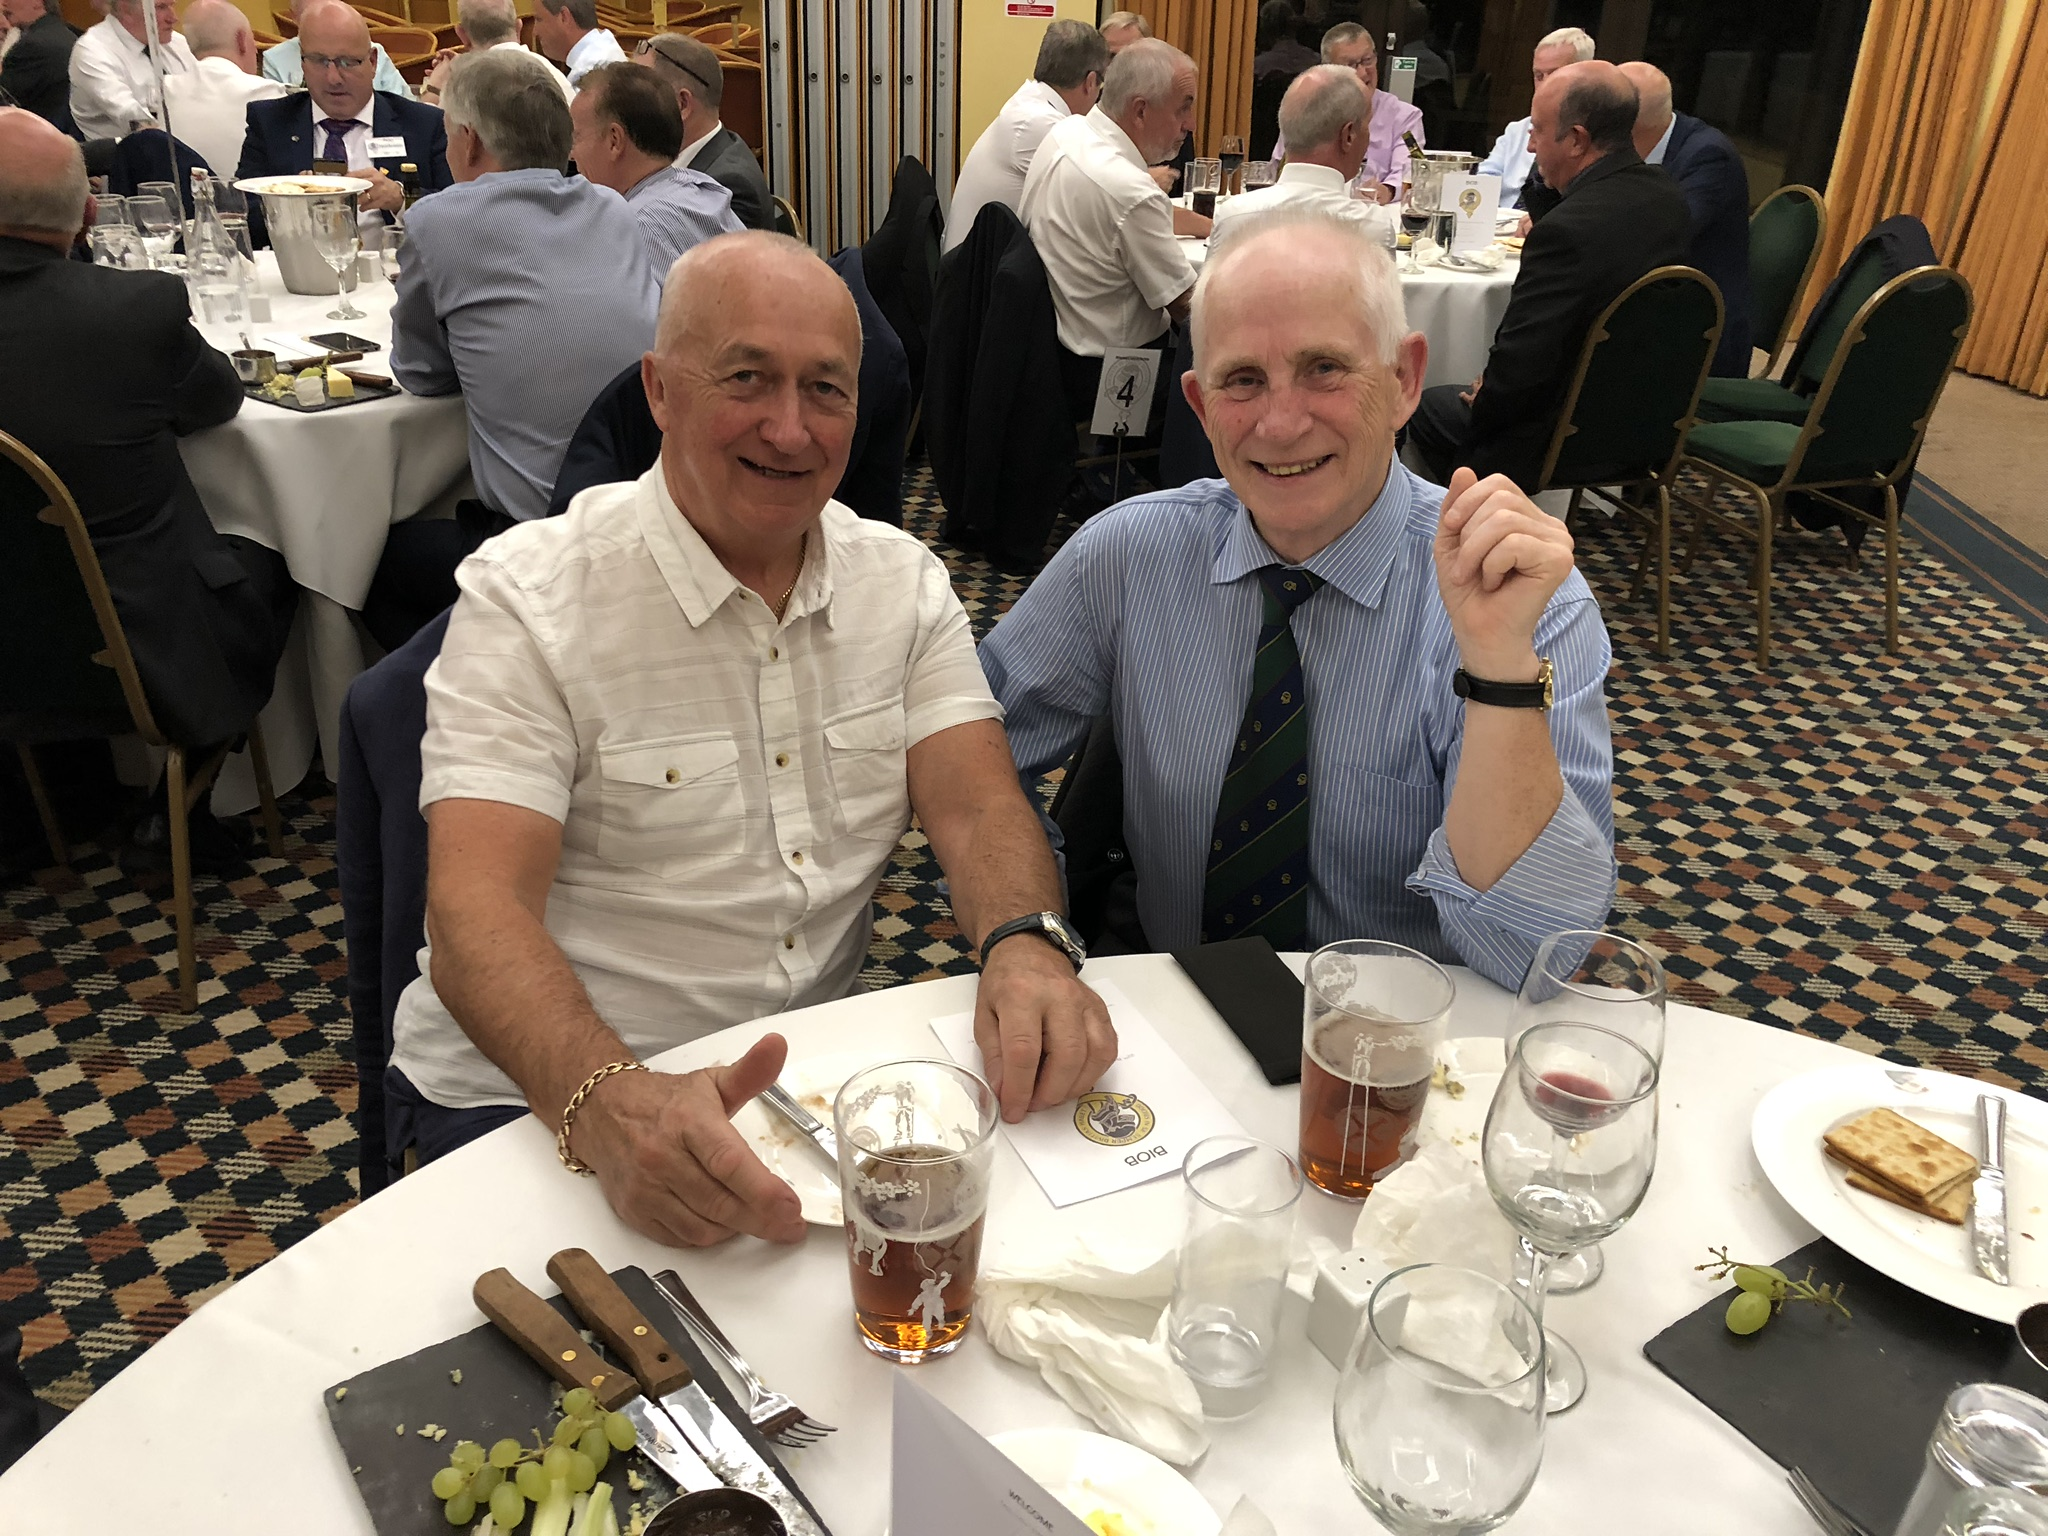 Photograph of Ian McDougall (1964/66) at Reunion Dinner 2019